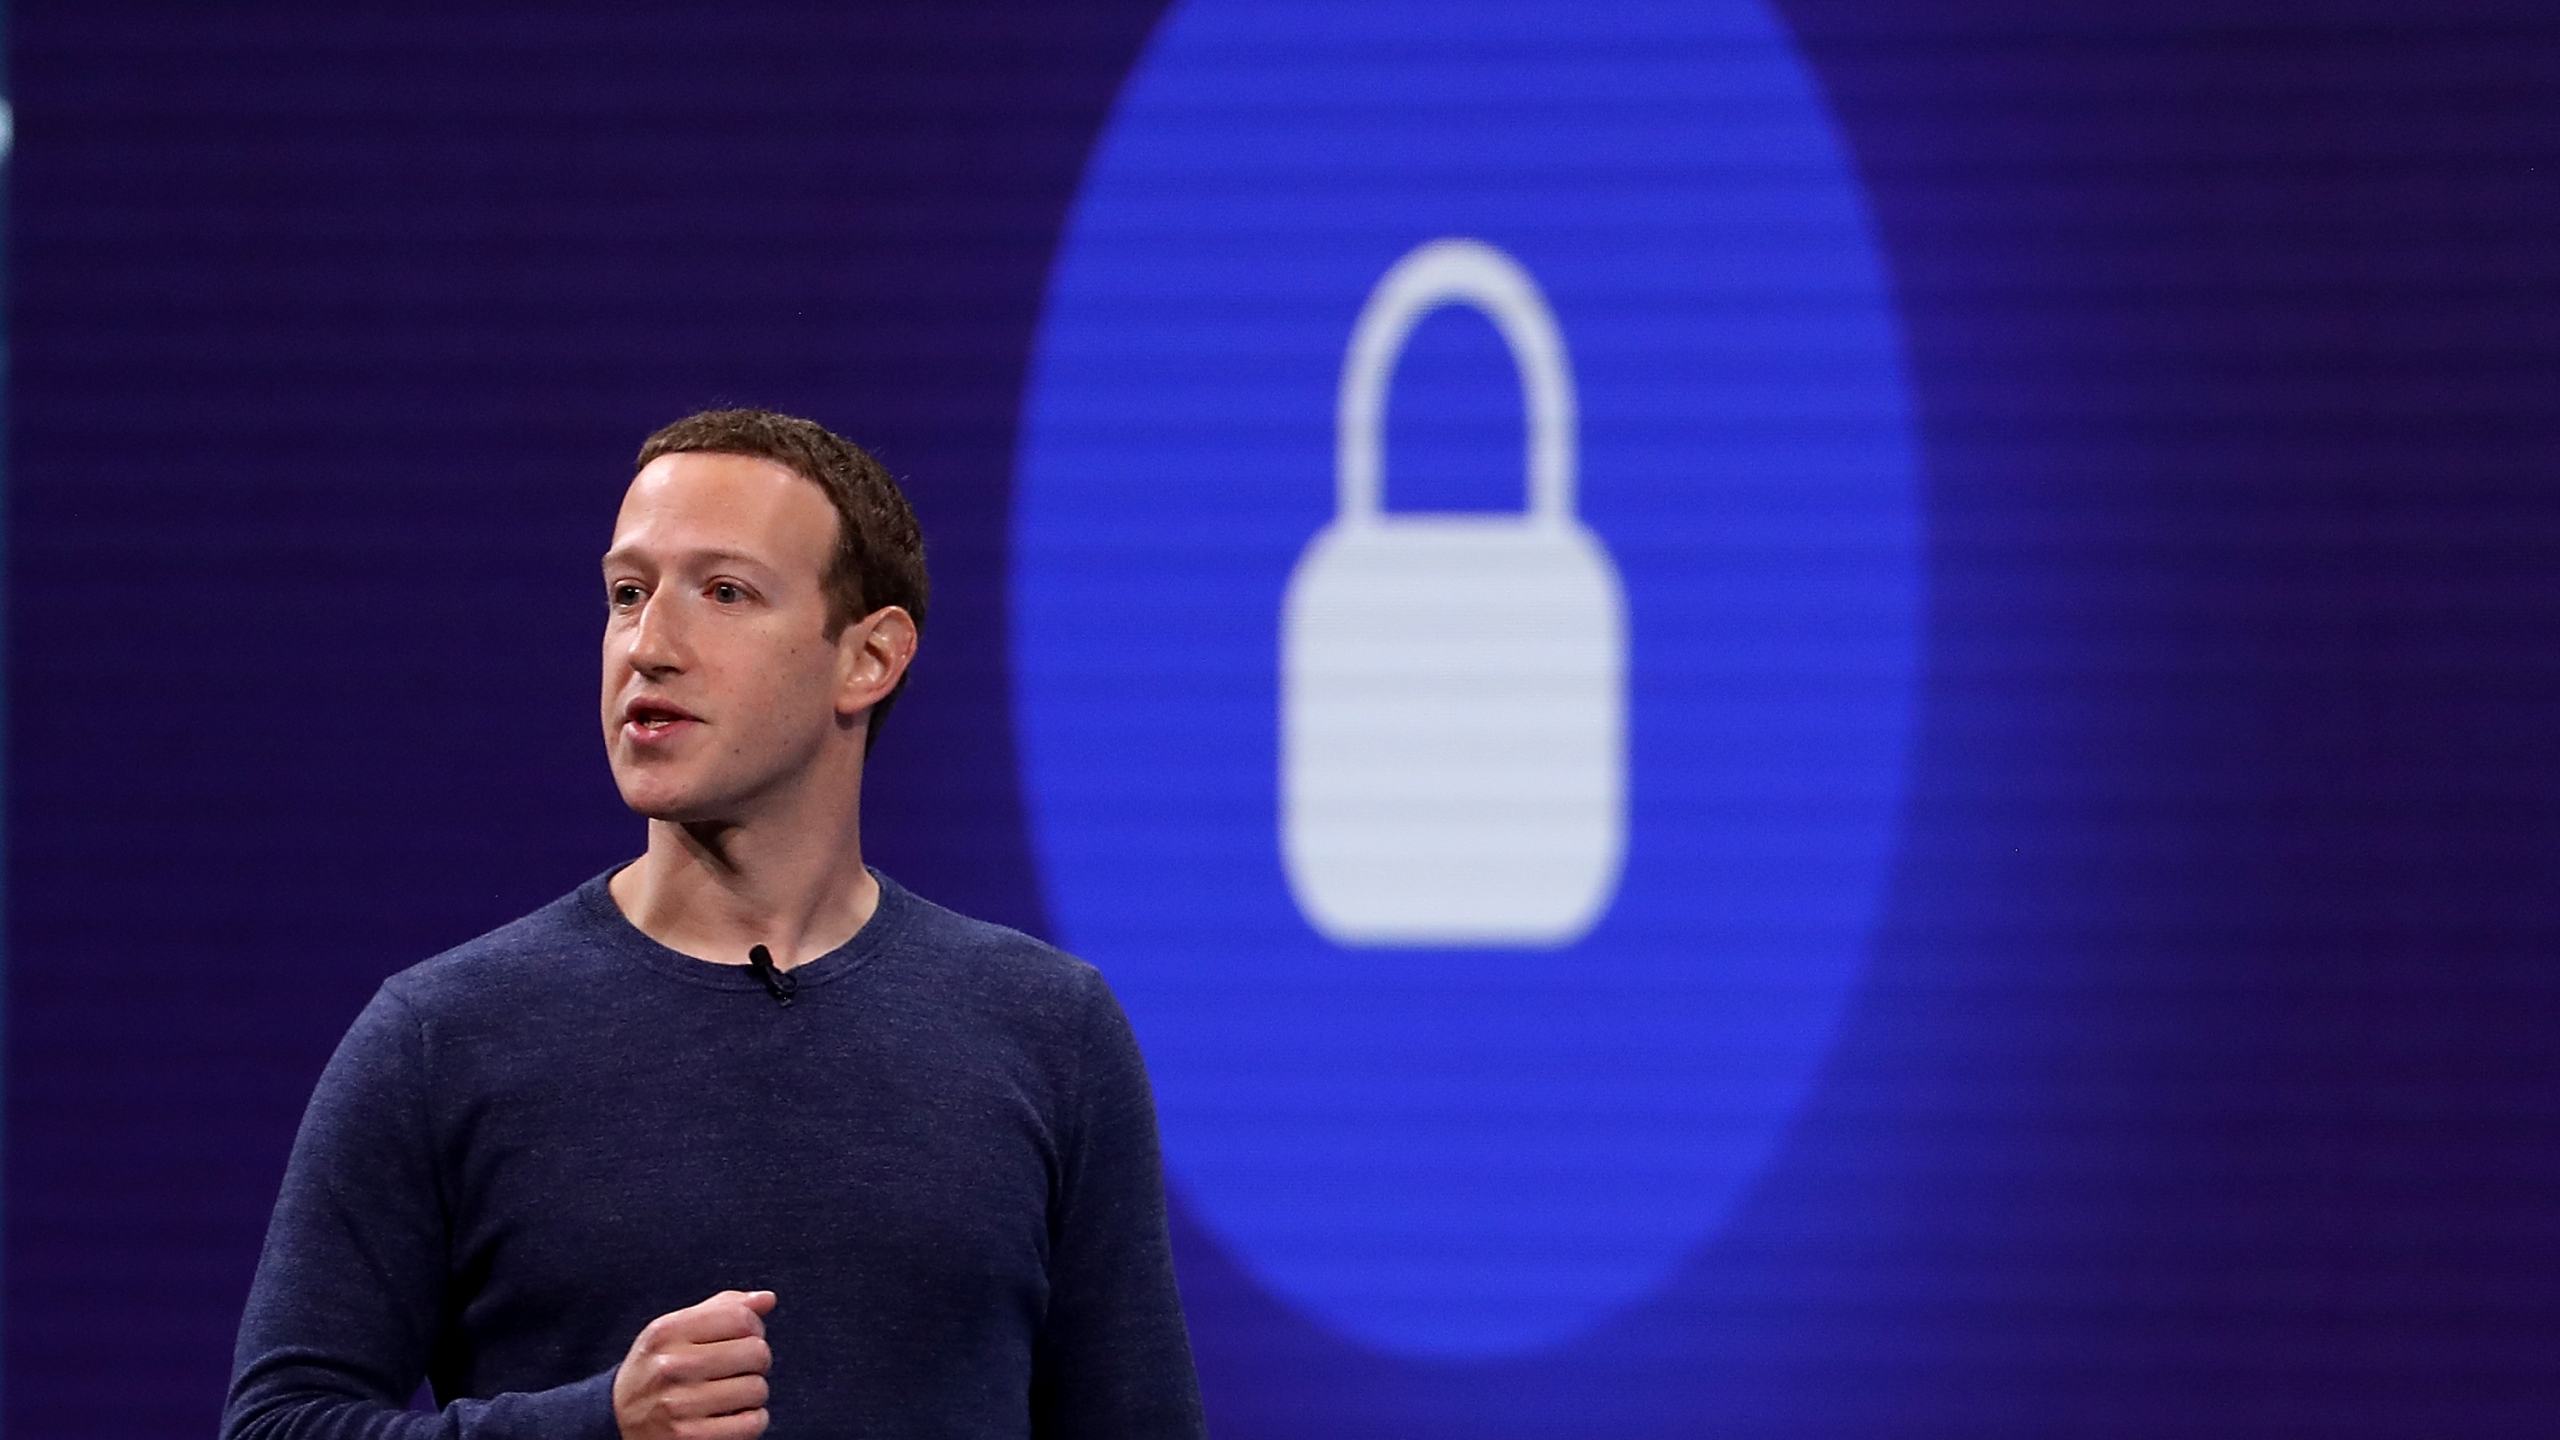 Facebook CEO Mark Zuckerberg speaks during the F8 Facebook Developers conference on May 1, 2018, in San Jose. (Credit: Justin Sullivan/Getty Images)